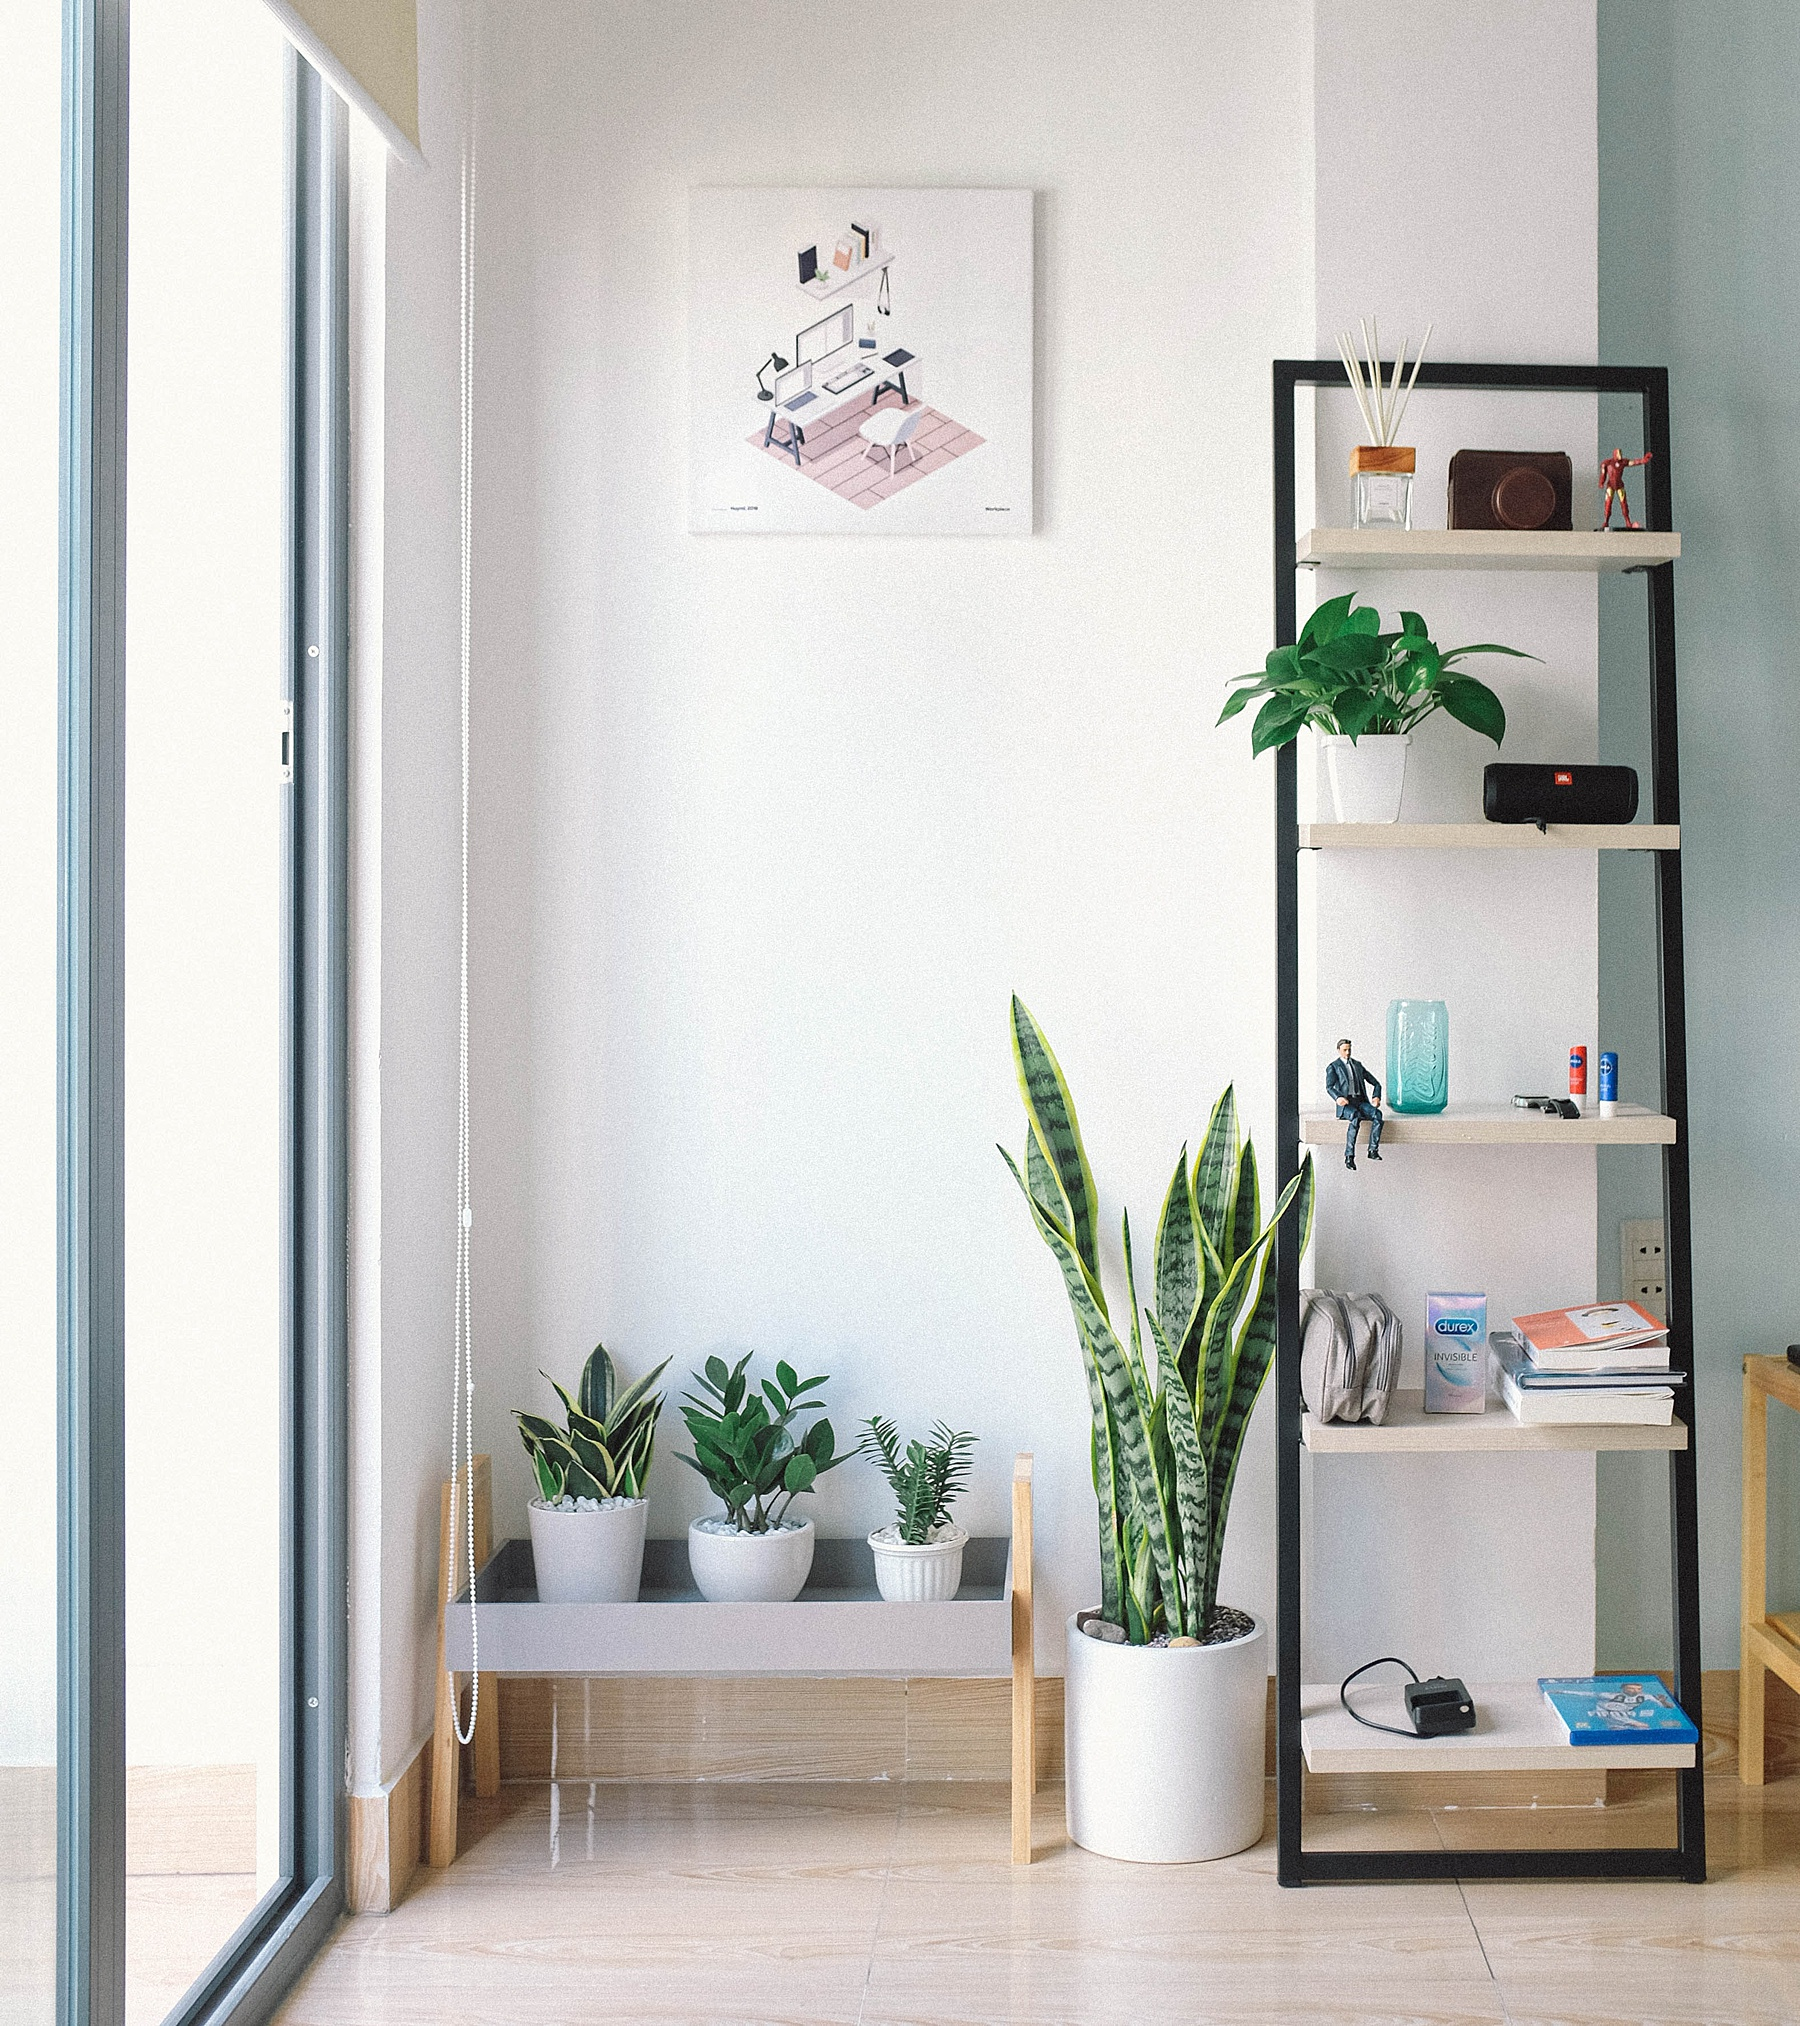 Corner area of home decorated with snake plants and other greenery among other modern decor